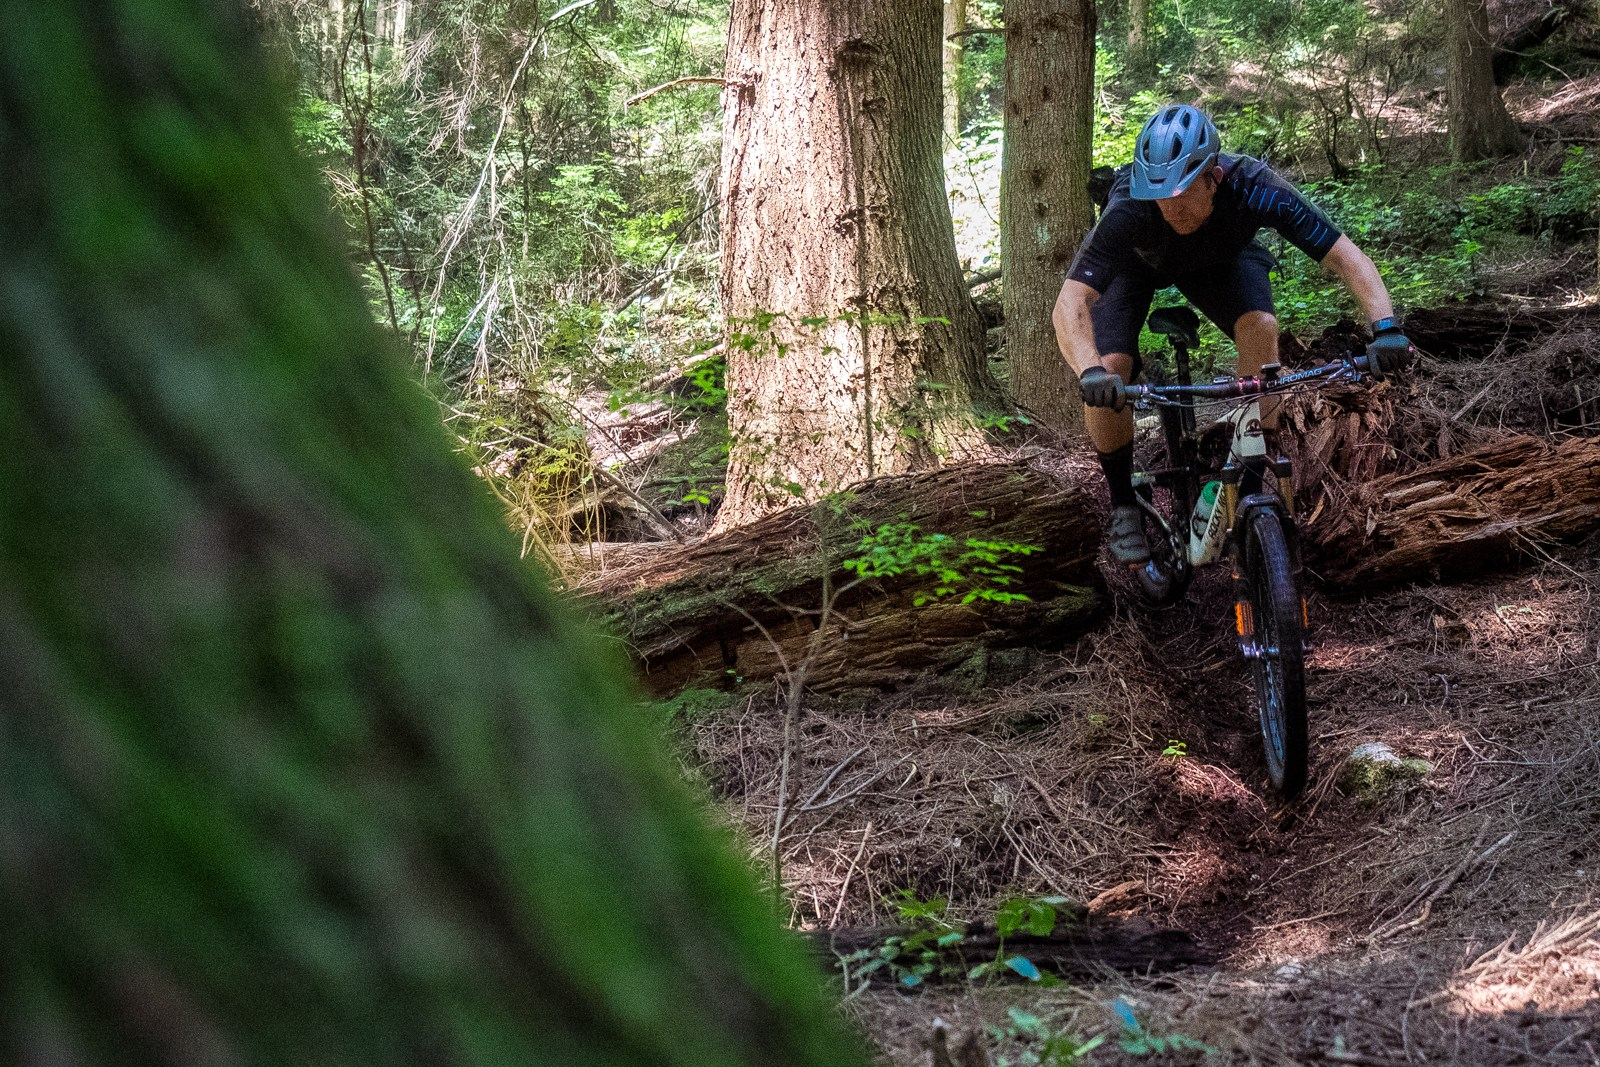 Pete Roggeman - Fromme Loam - RMB Thunderbolt Review